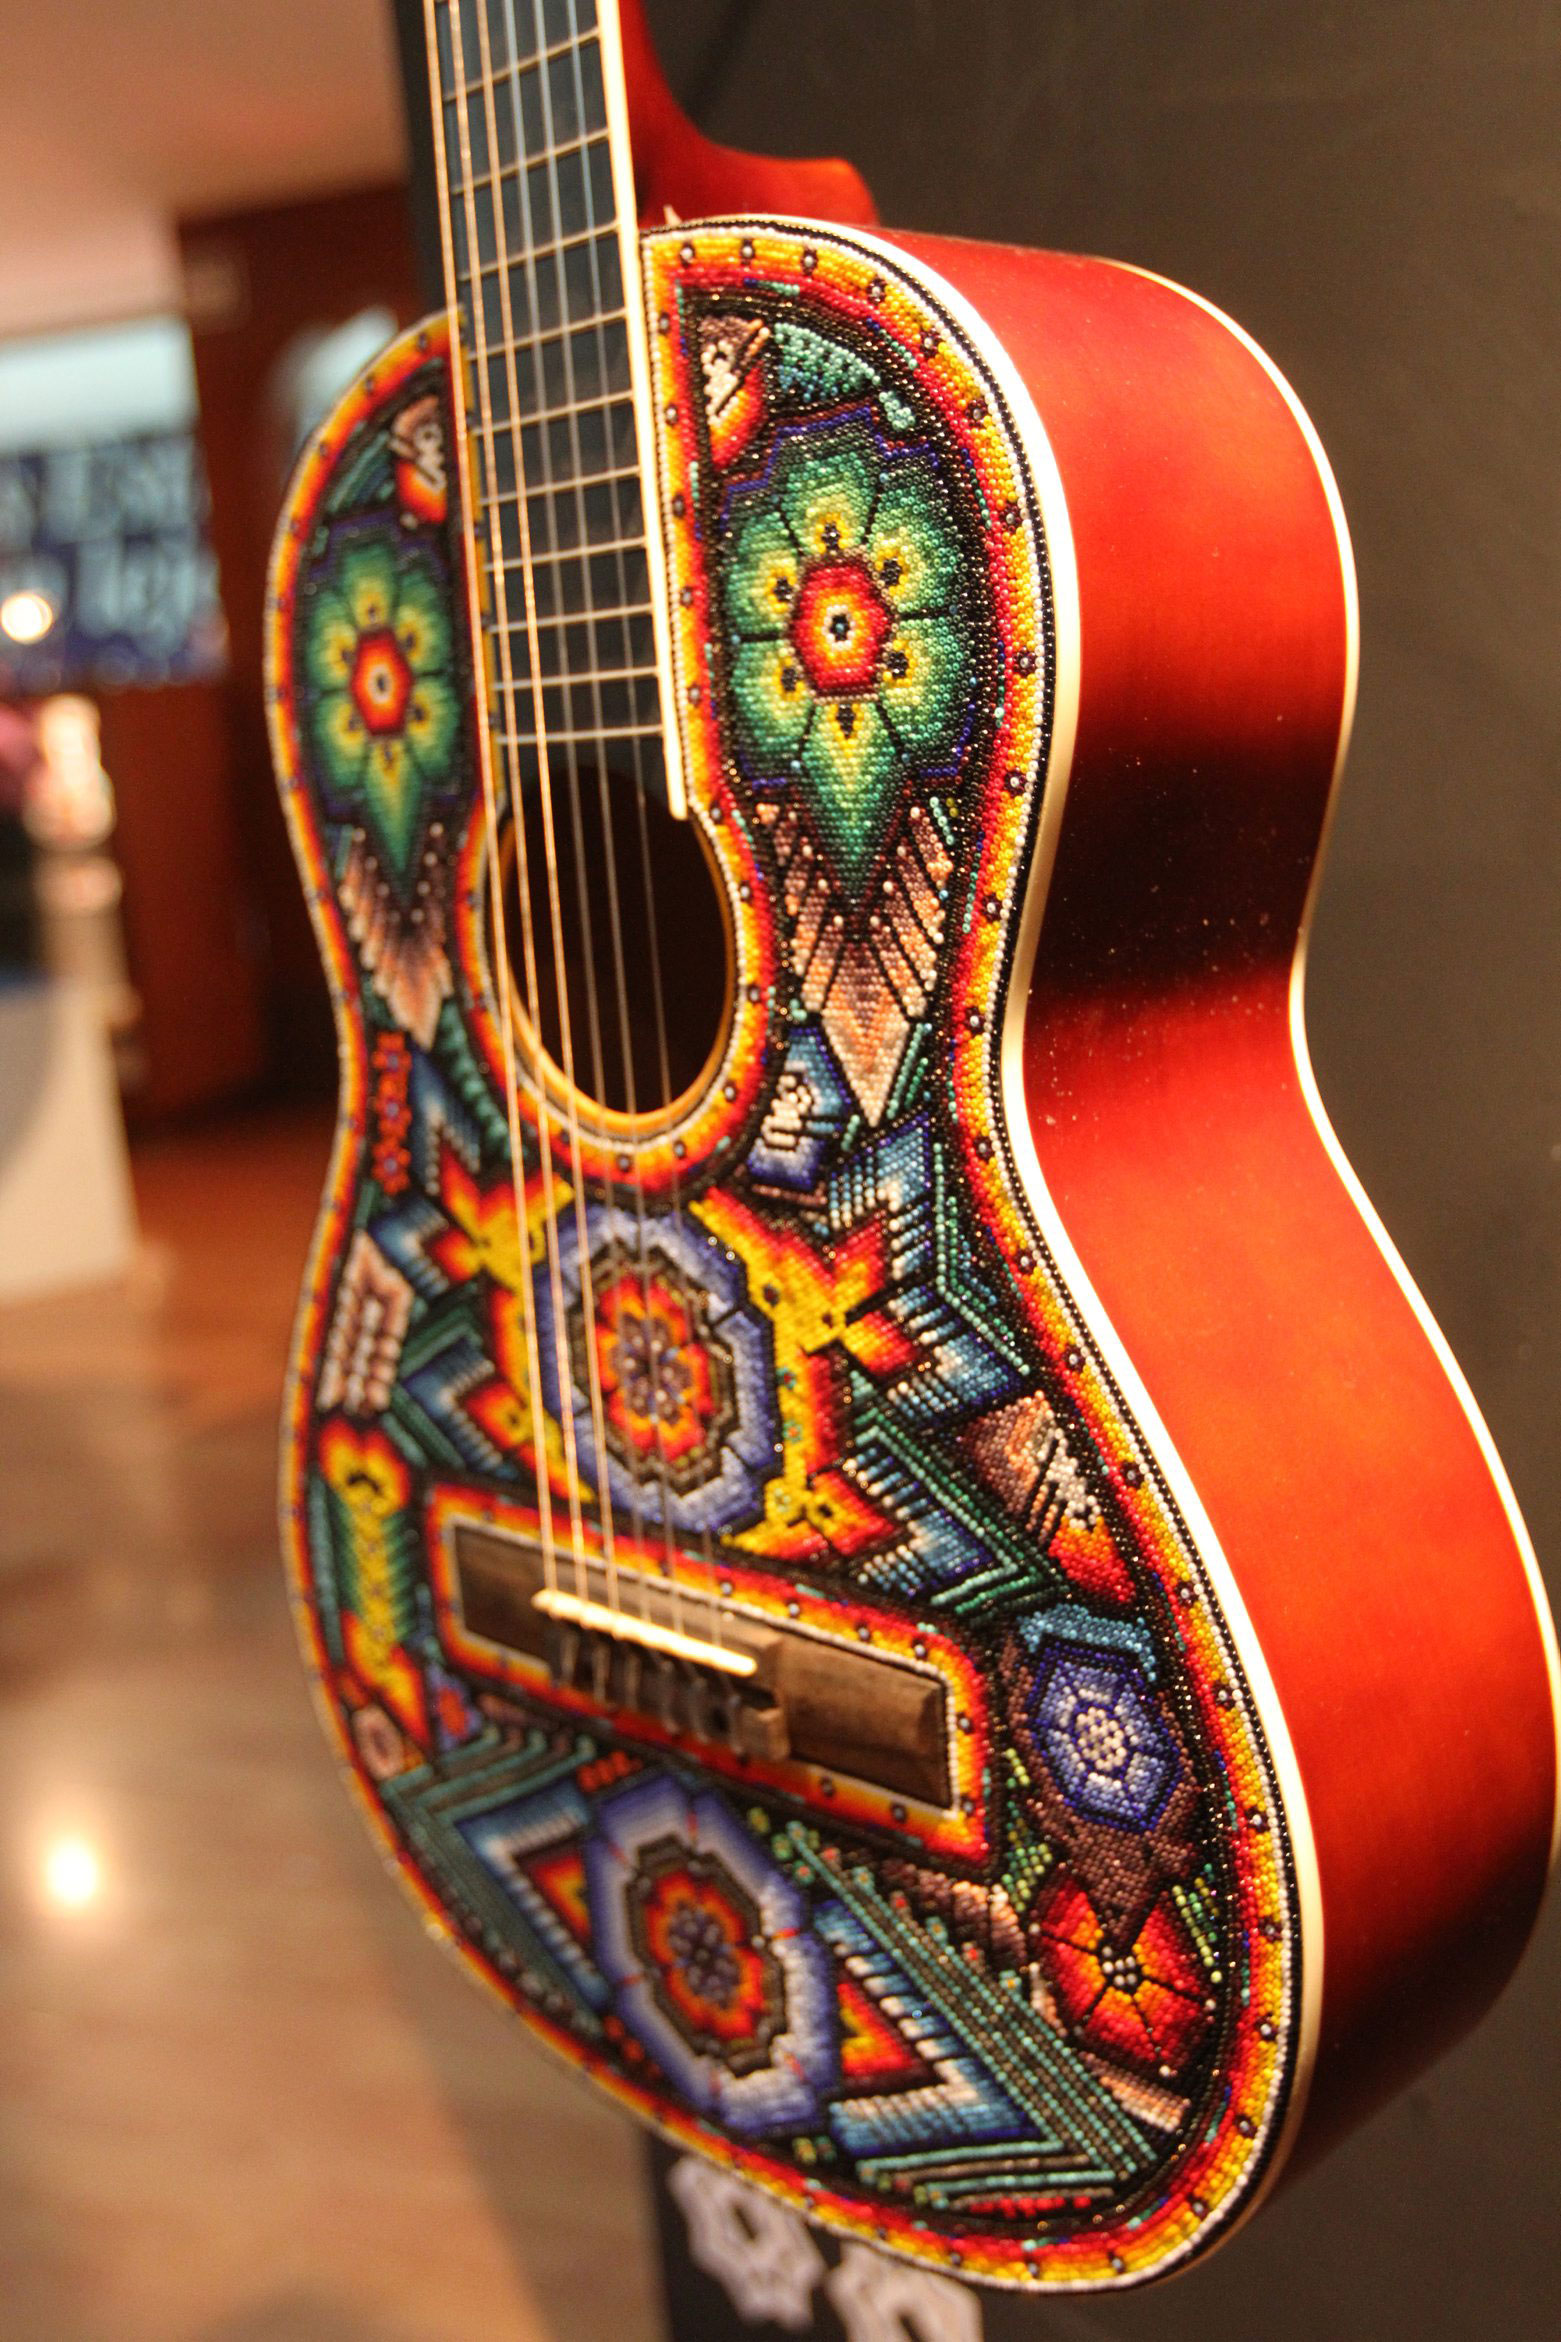 Guitarras Decoradas Arte Huichol Se Exhibirá En China Mediante Instrumentos